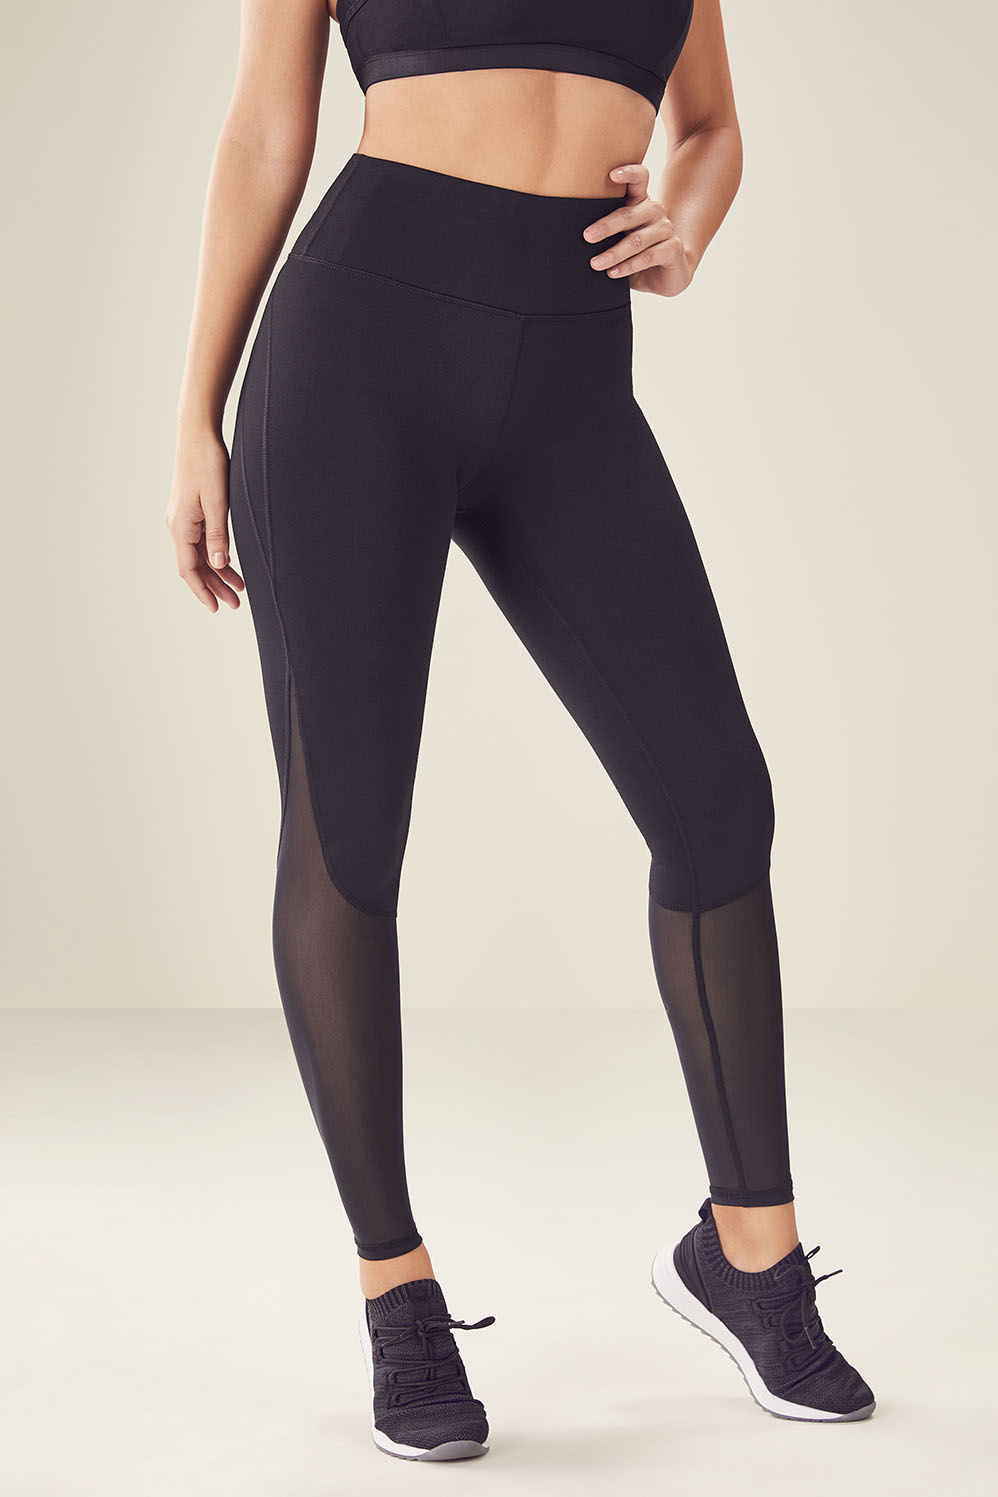 5664543eda4fe9 High-Waisted Mesh PowerHold® Legging - Fabletics